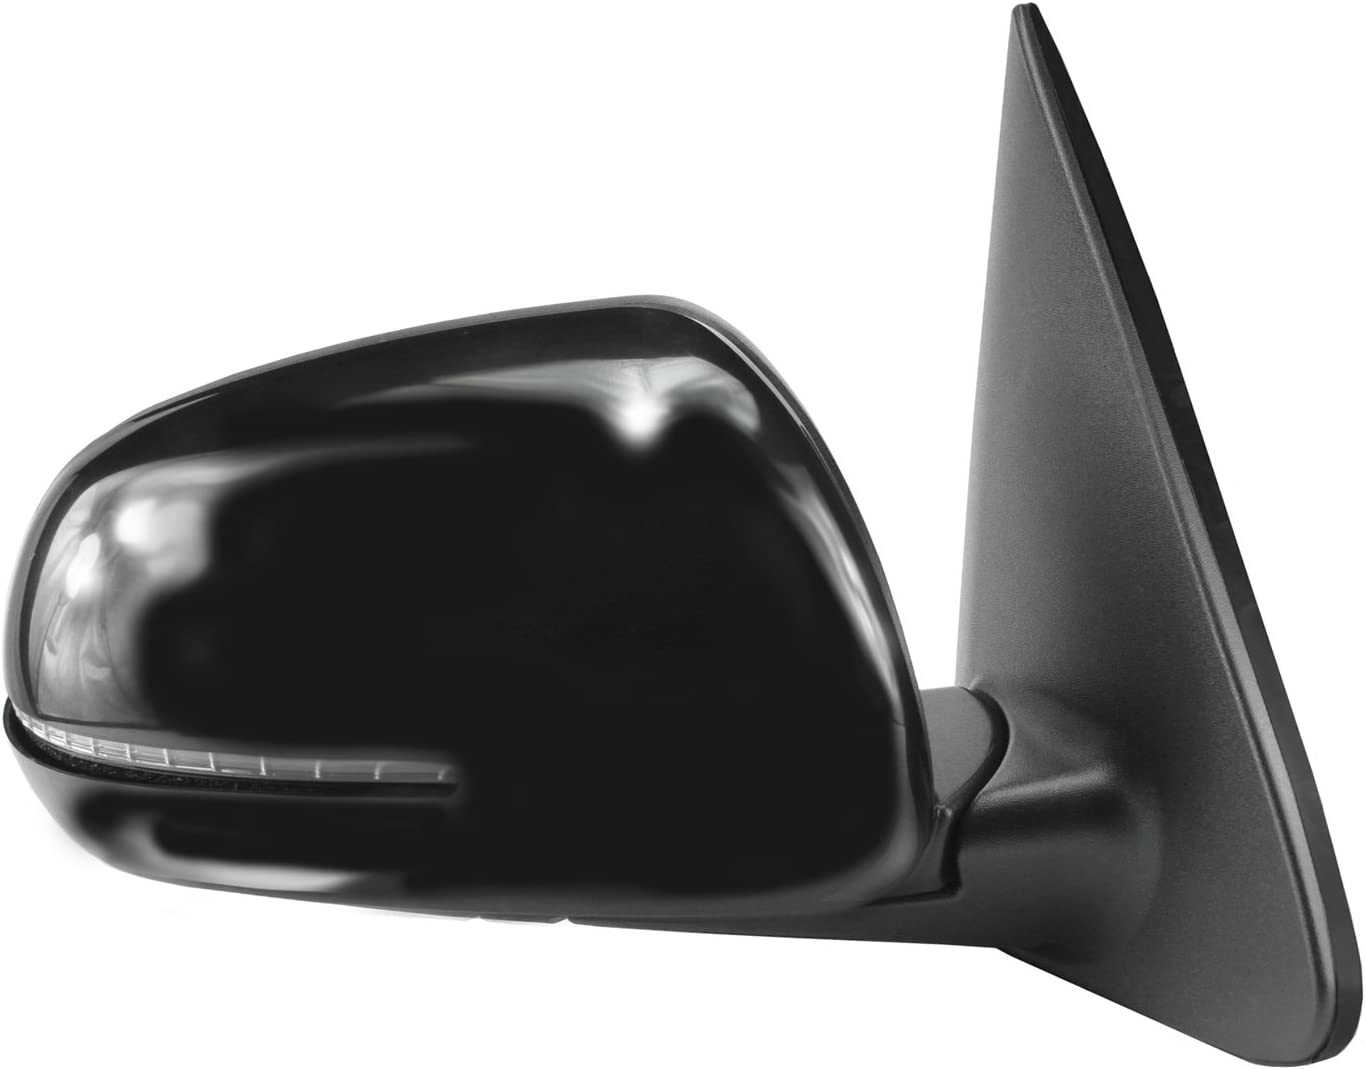 Amazon Com Fit System 75549k Kia Forte Hatchback Sedan Passenger Side Textured Black Heated Power Replacement Mirror With Ptm Cover Automotive